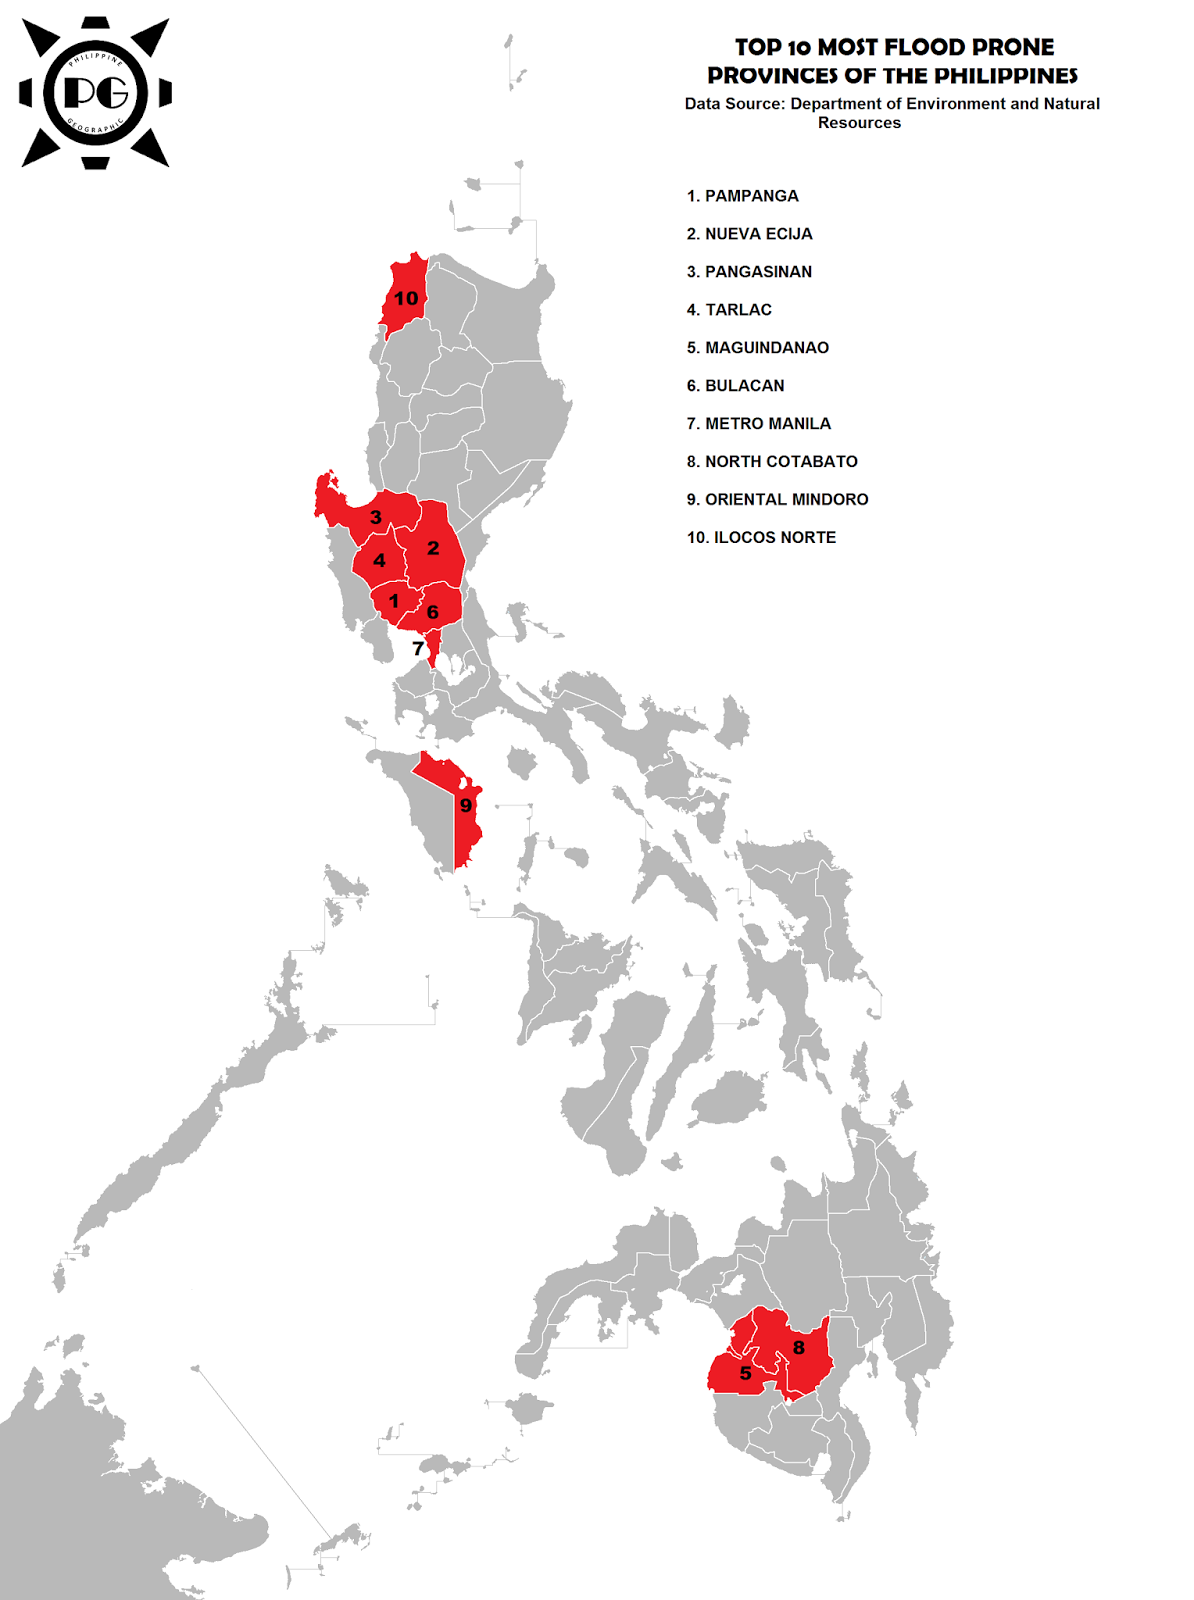 Philippine Geographic Top 10 Most Flood Prone Provinces Of The